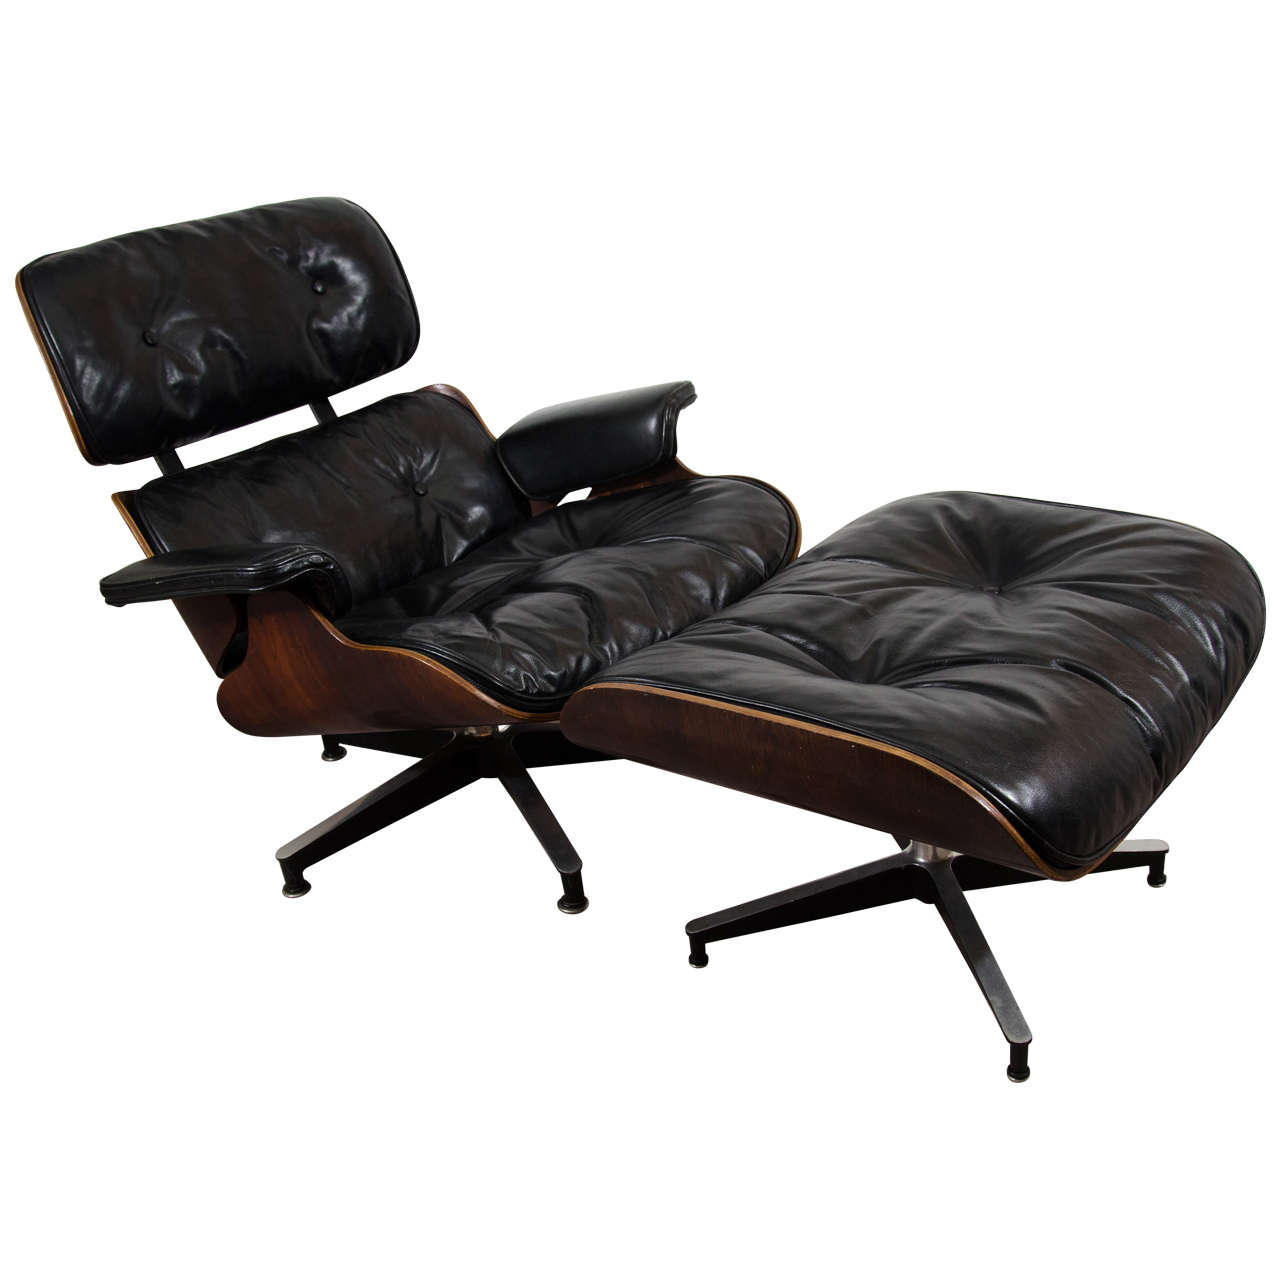 Midcentury Classic Eames Rosewood Chair And Ottoman In Black Leather Upholstery